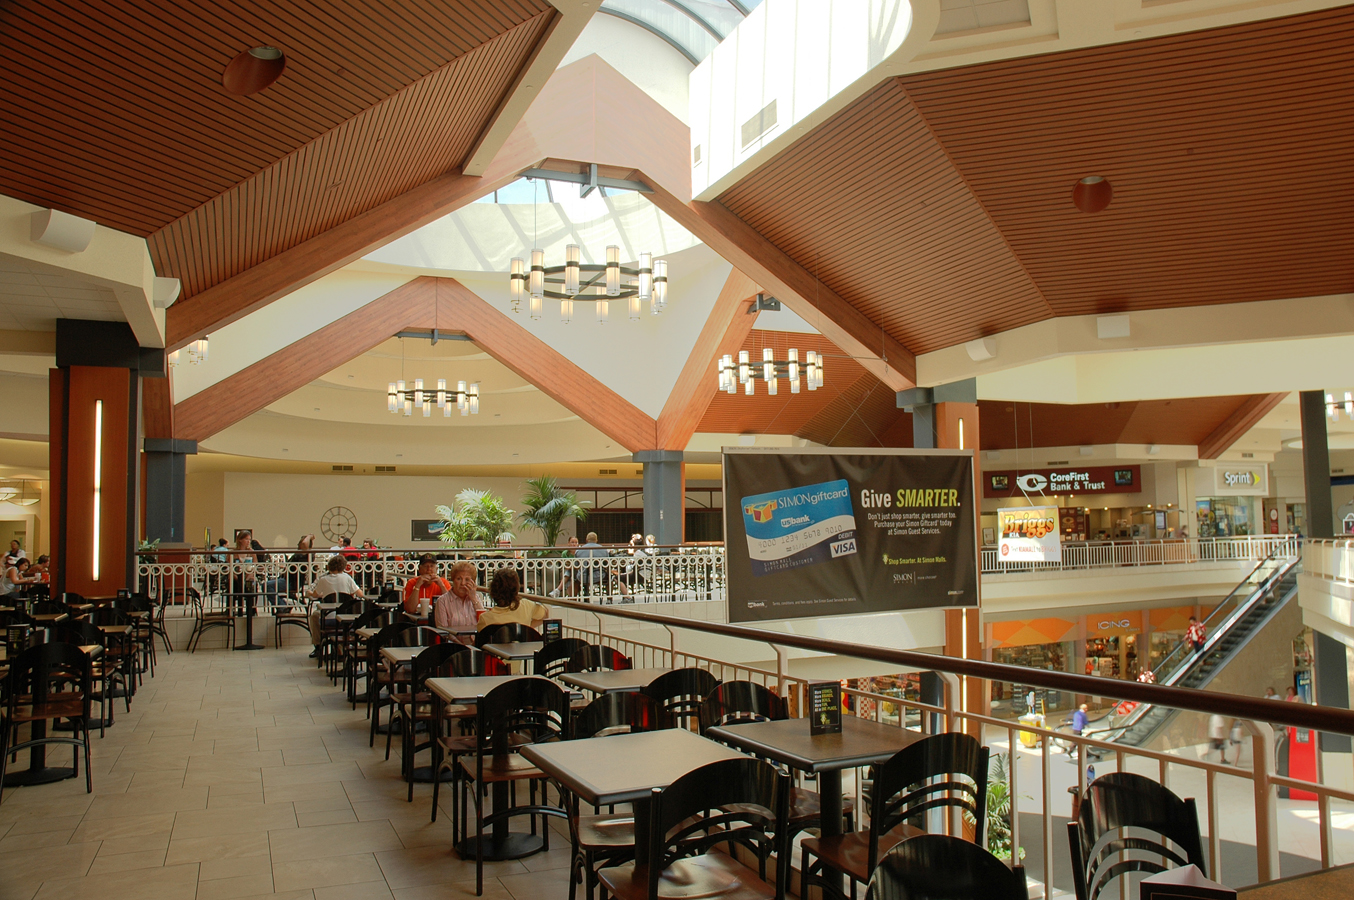 Va Topeka Ks >> LK Architecture | Westridge Mall, Topeka, KS